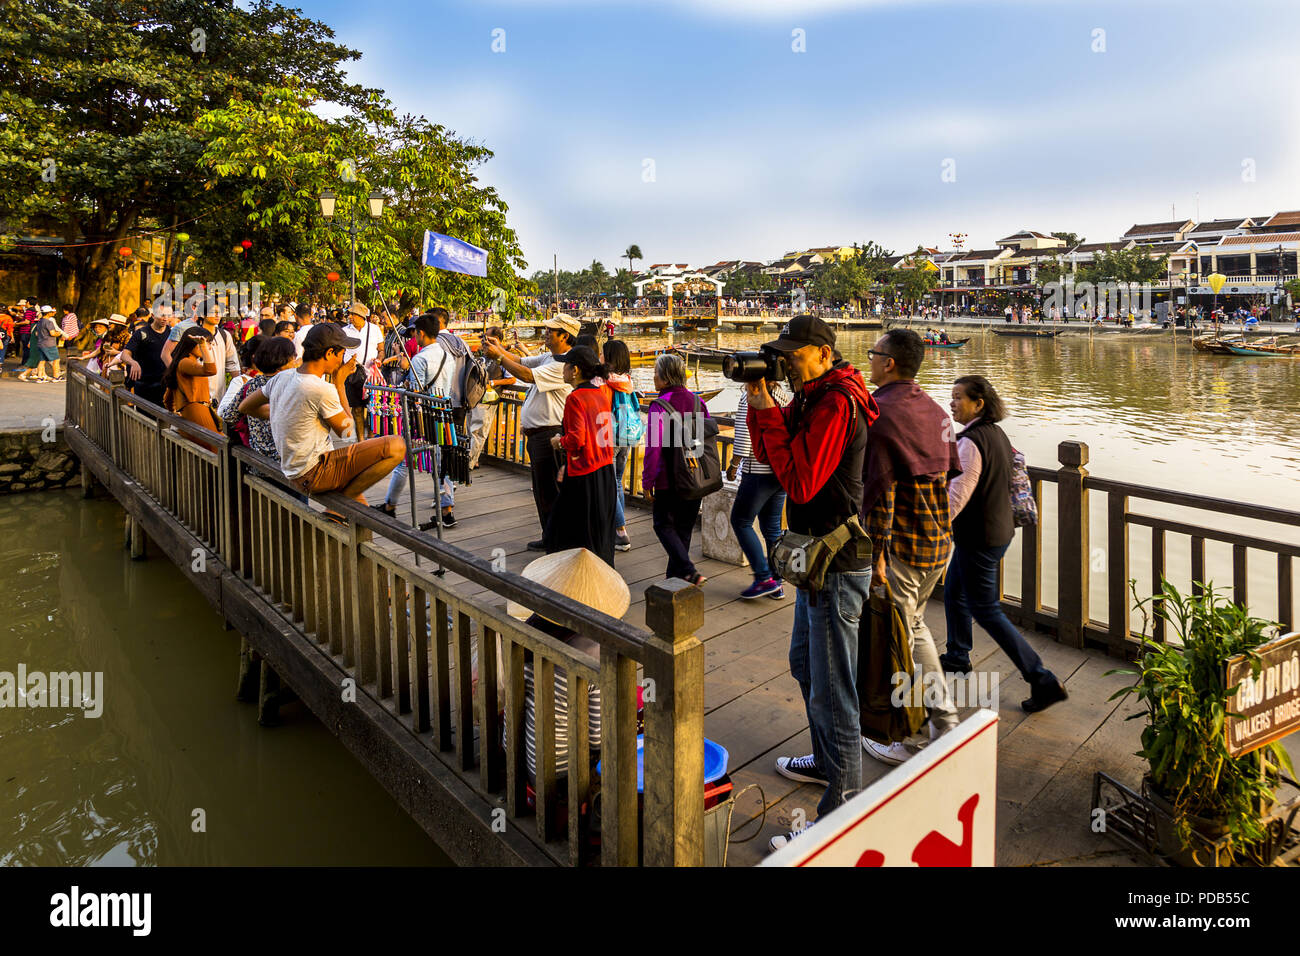 Dec. 08, 2017, Hoi An Ancient Town, VN. A crowd on the bridge that overlooks the famous Japanese bridge. Tourists taking pictures and walki Stock Photo